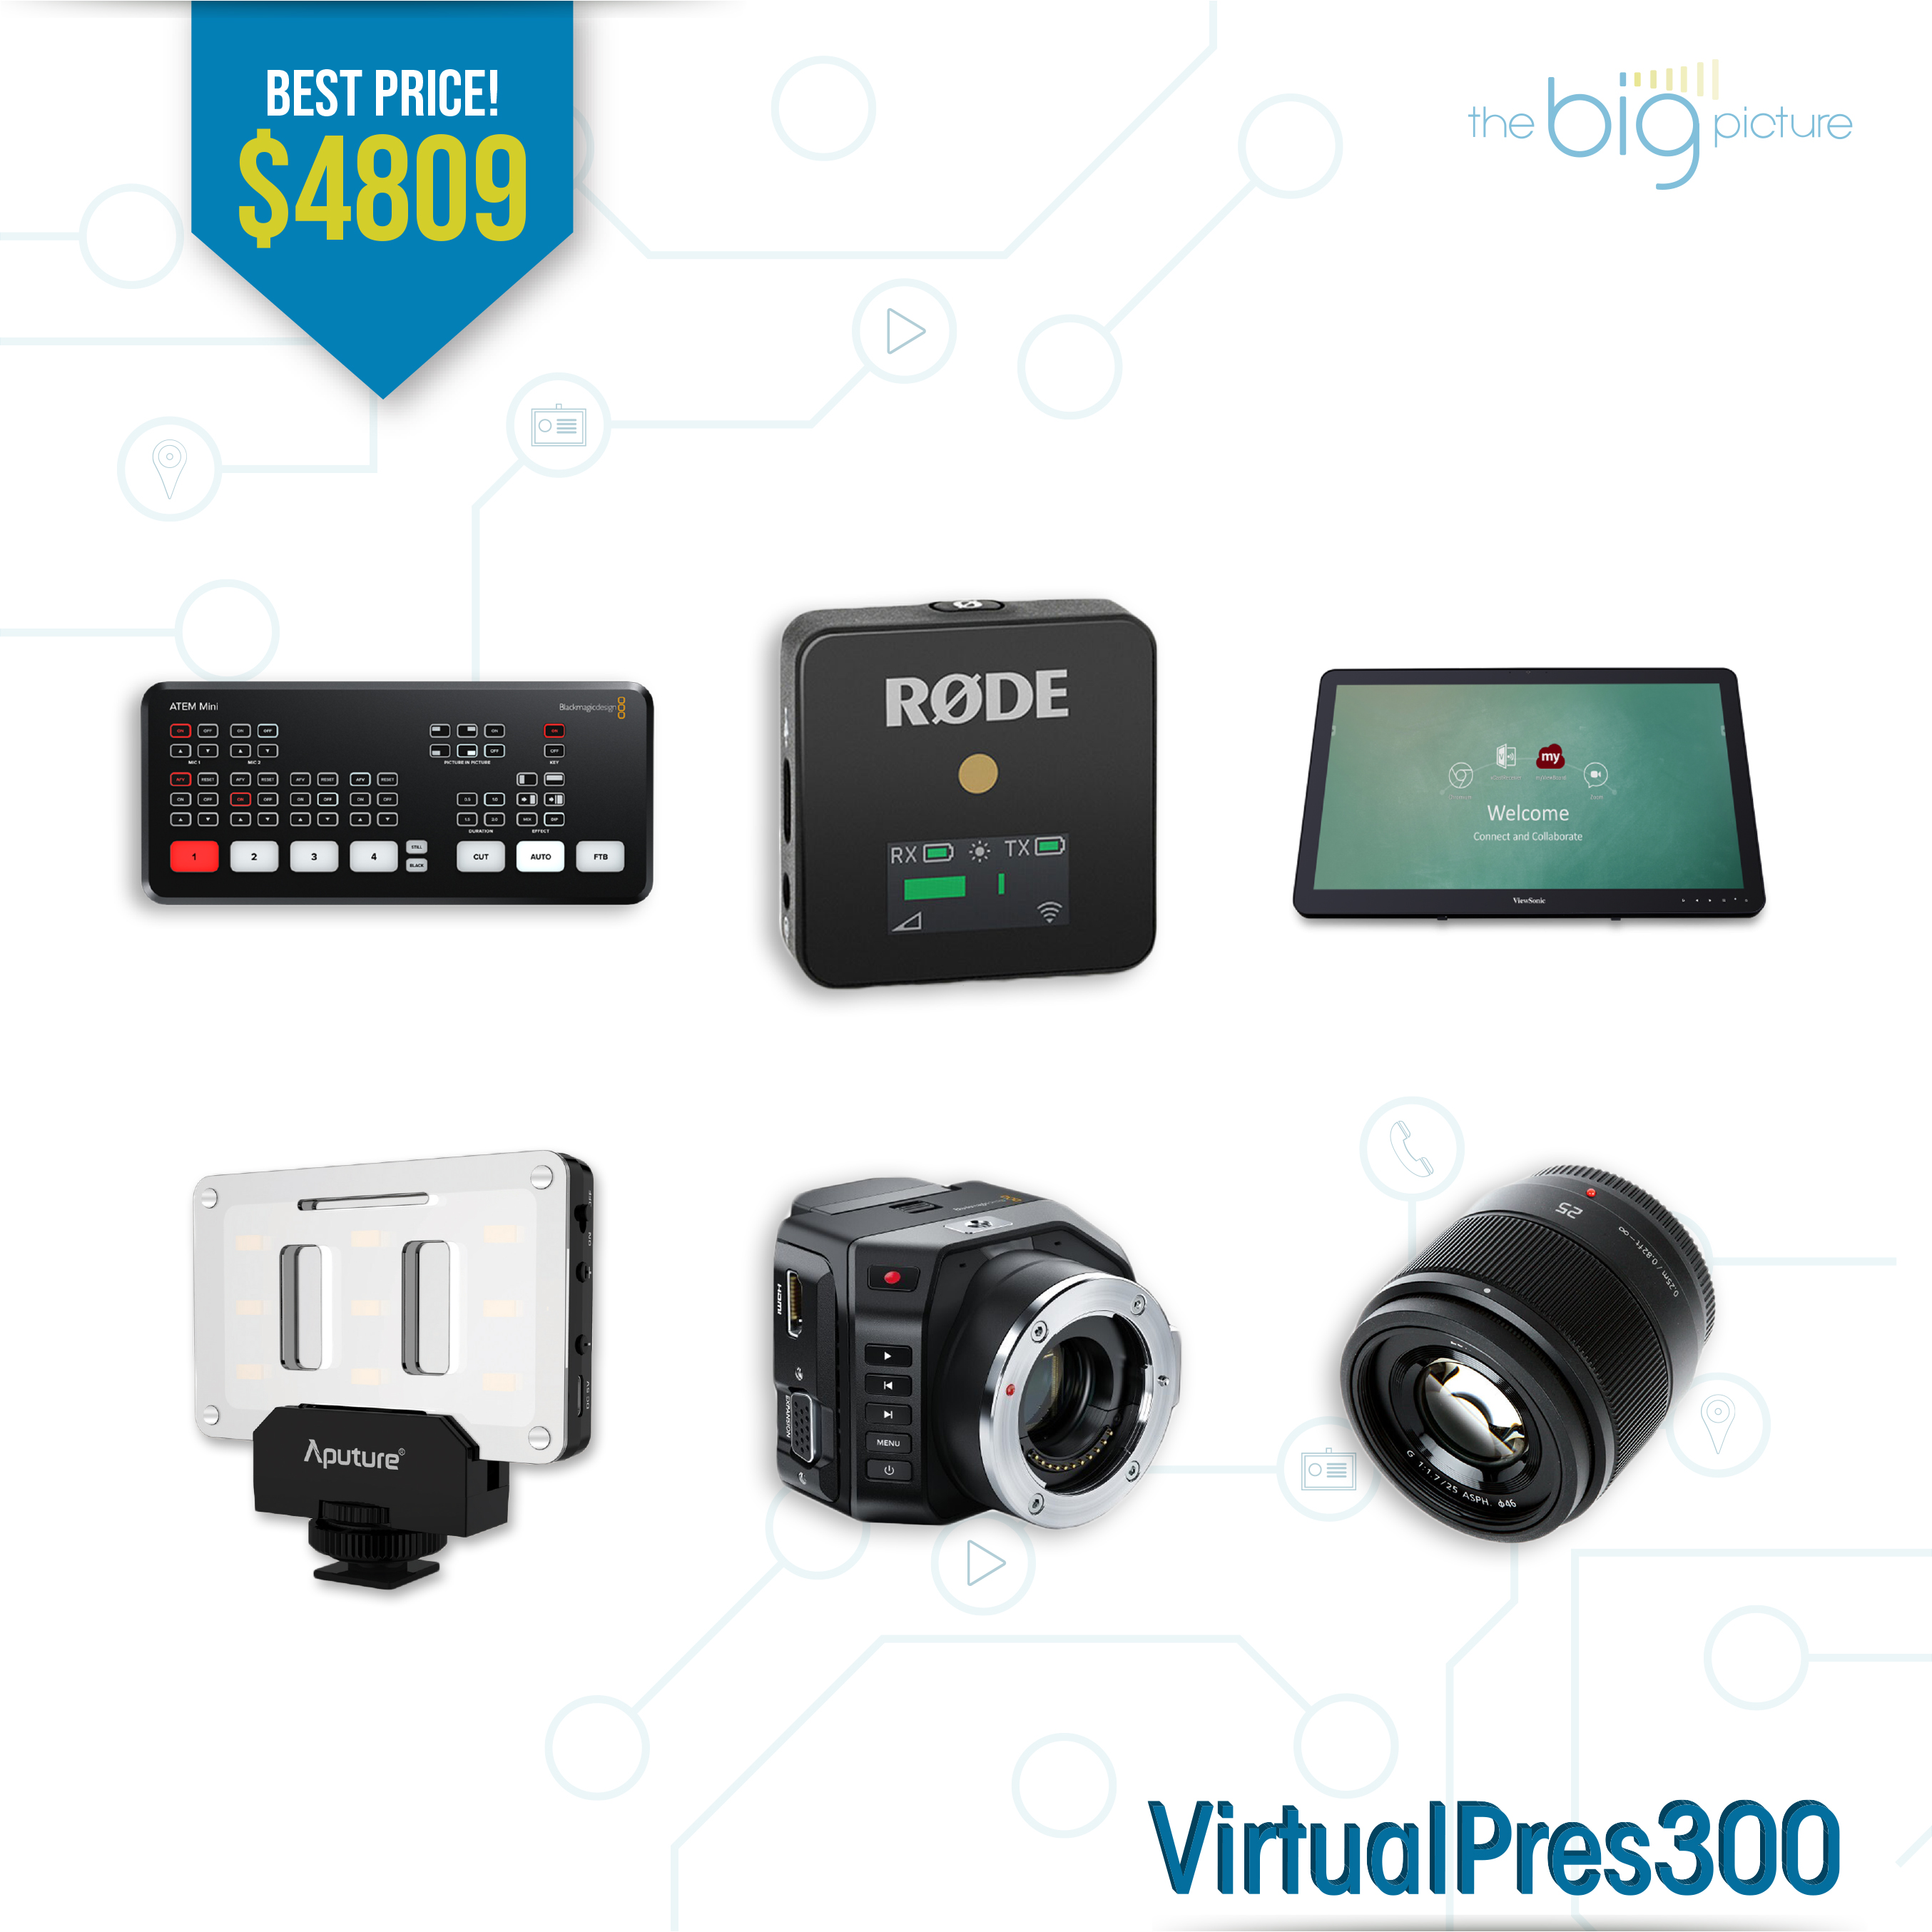 A set of products for VirtualPres300